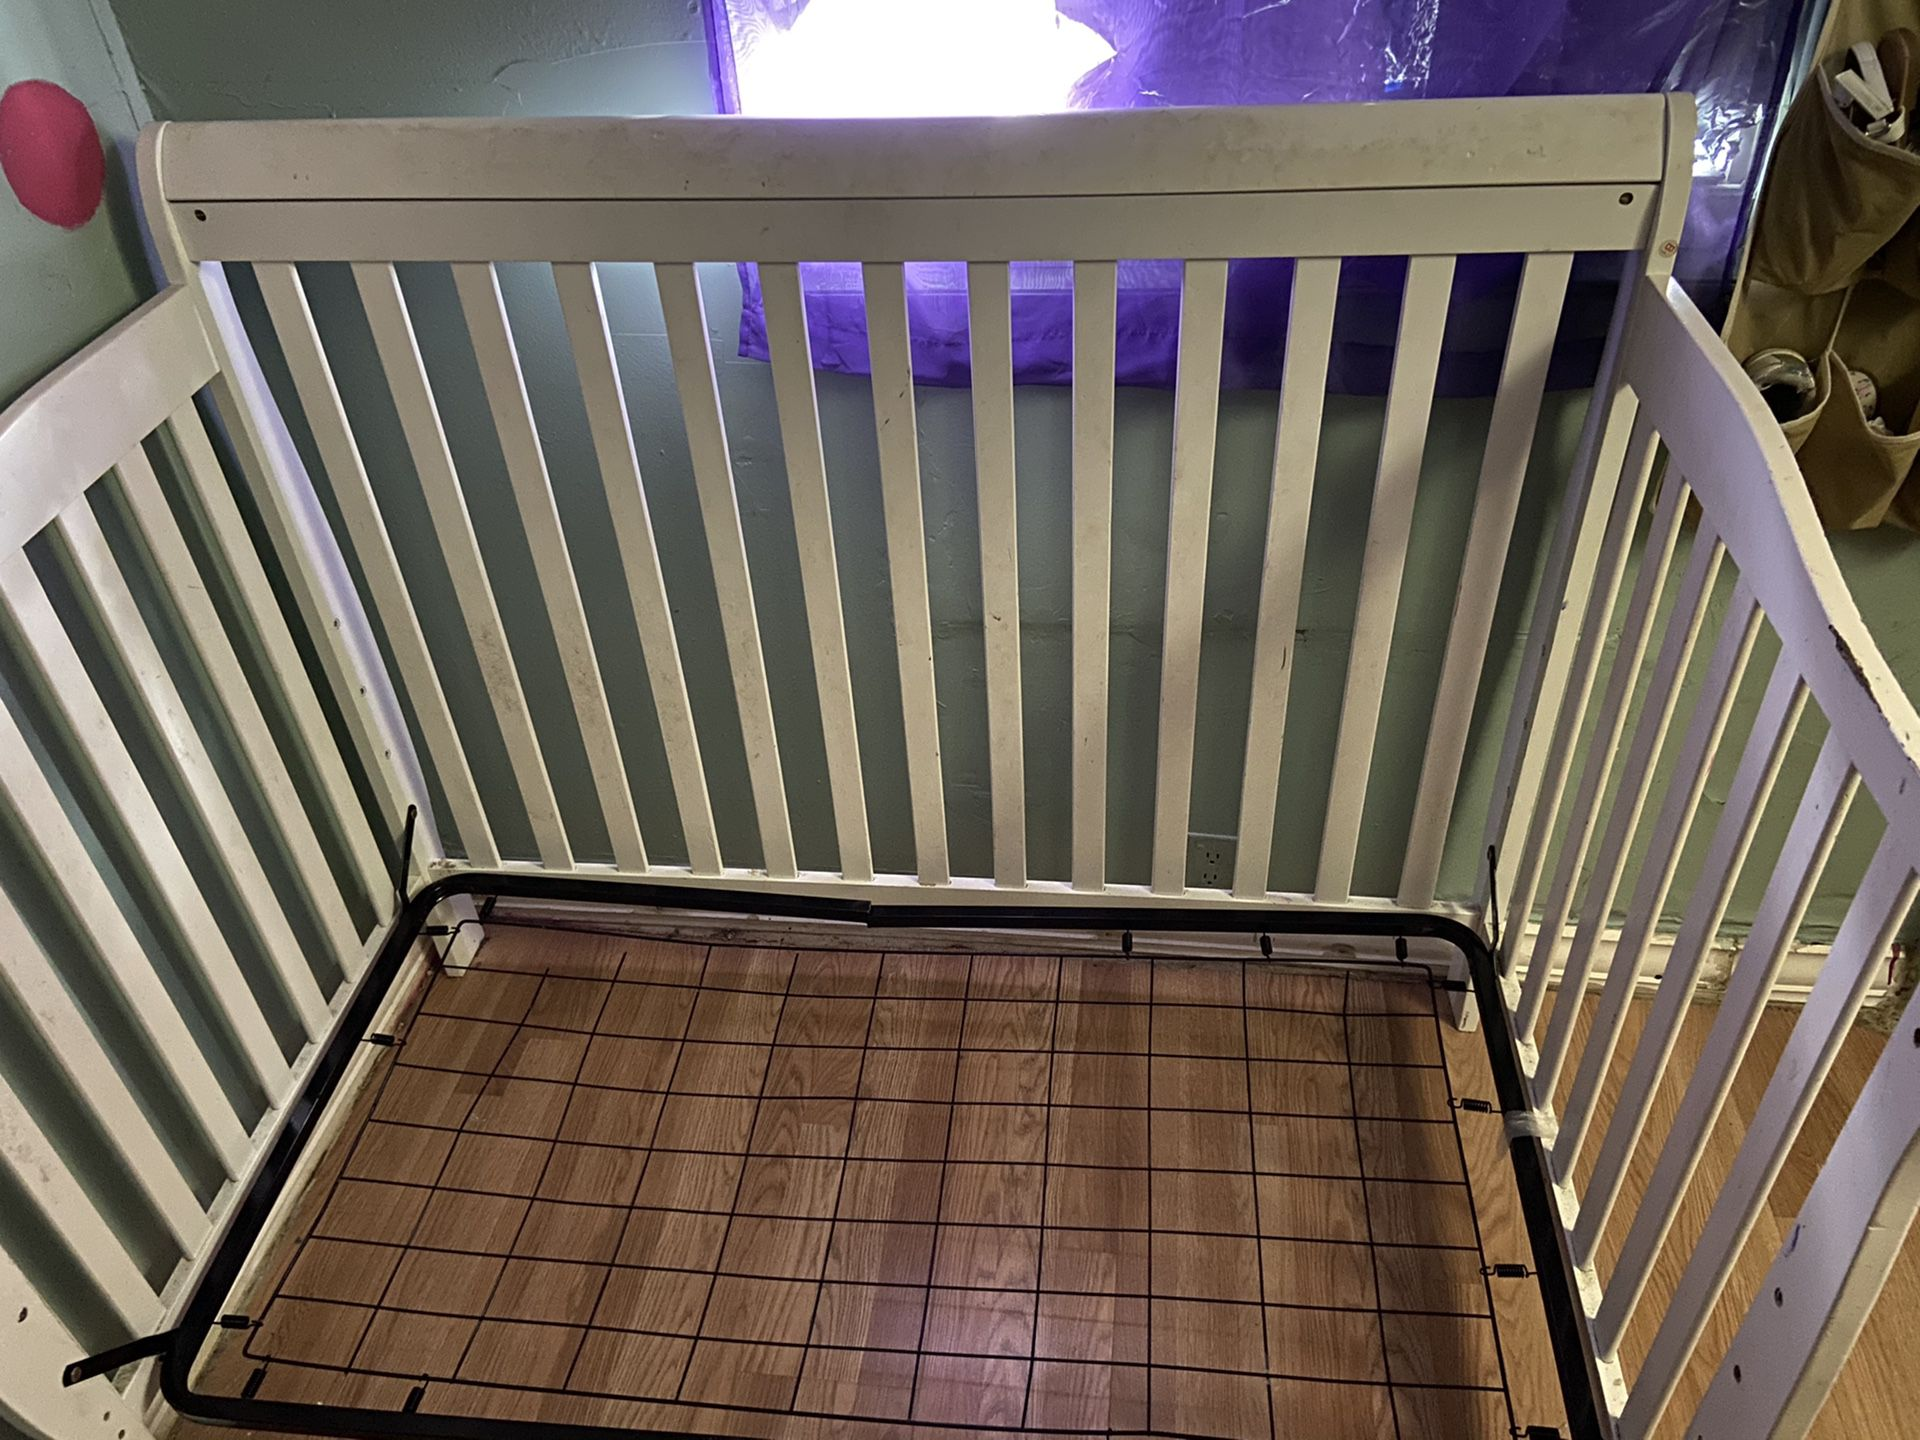 Crib converts to full bed or todler bed needs paibt has biting on one rail